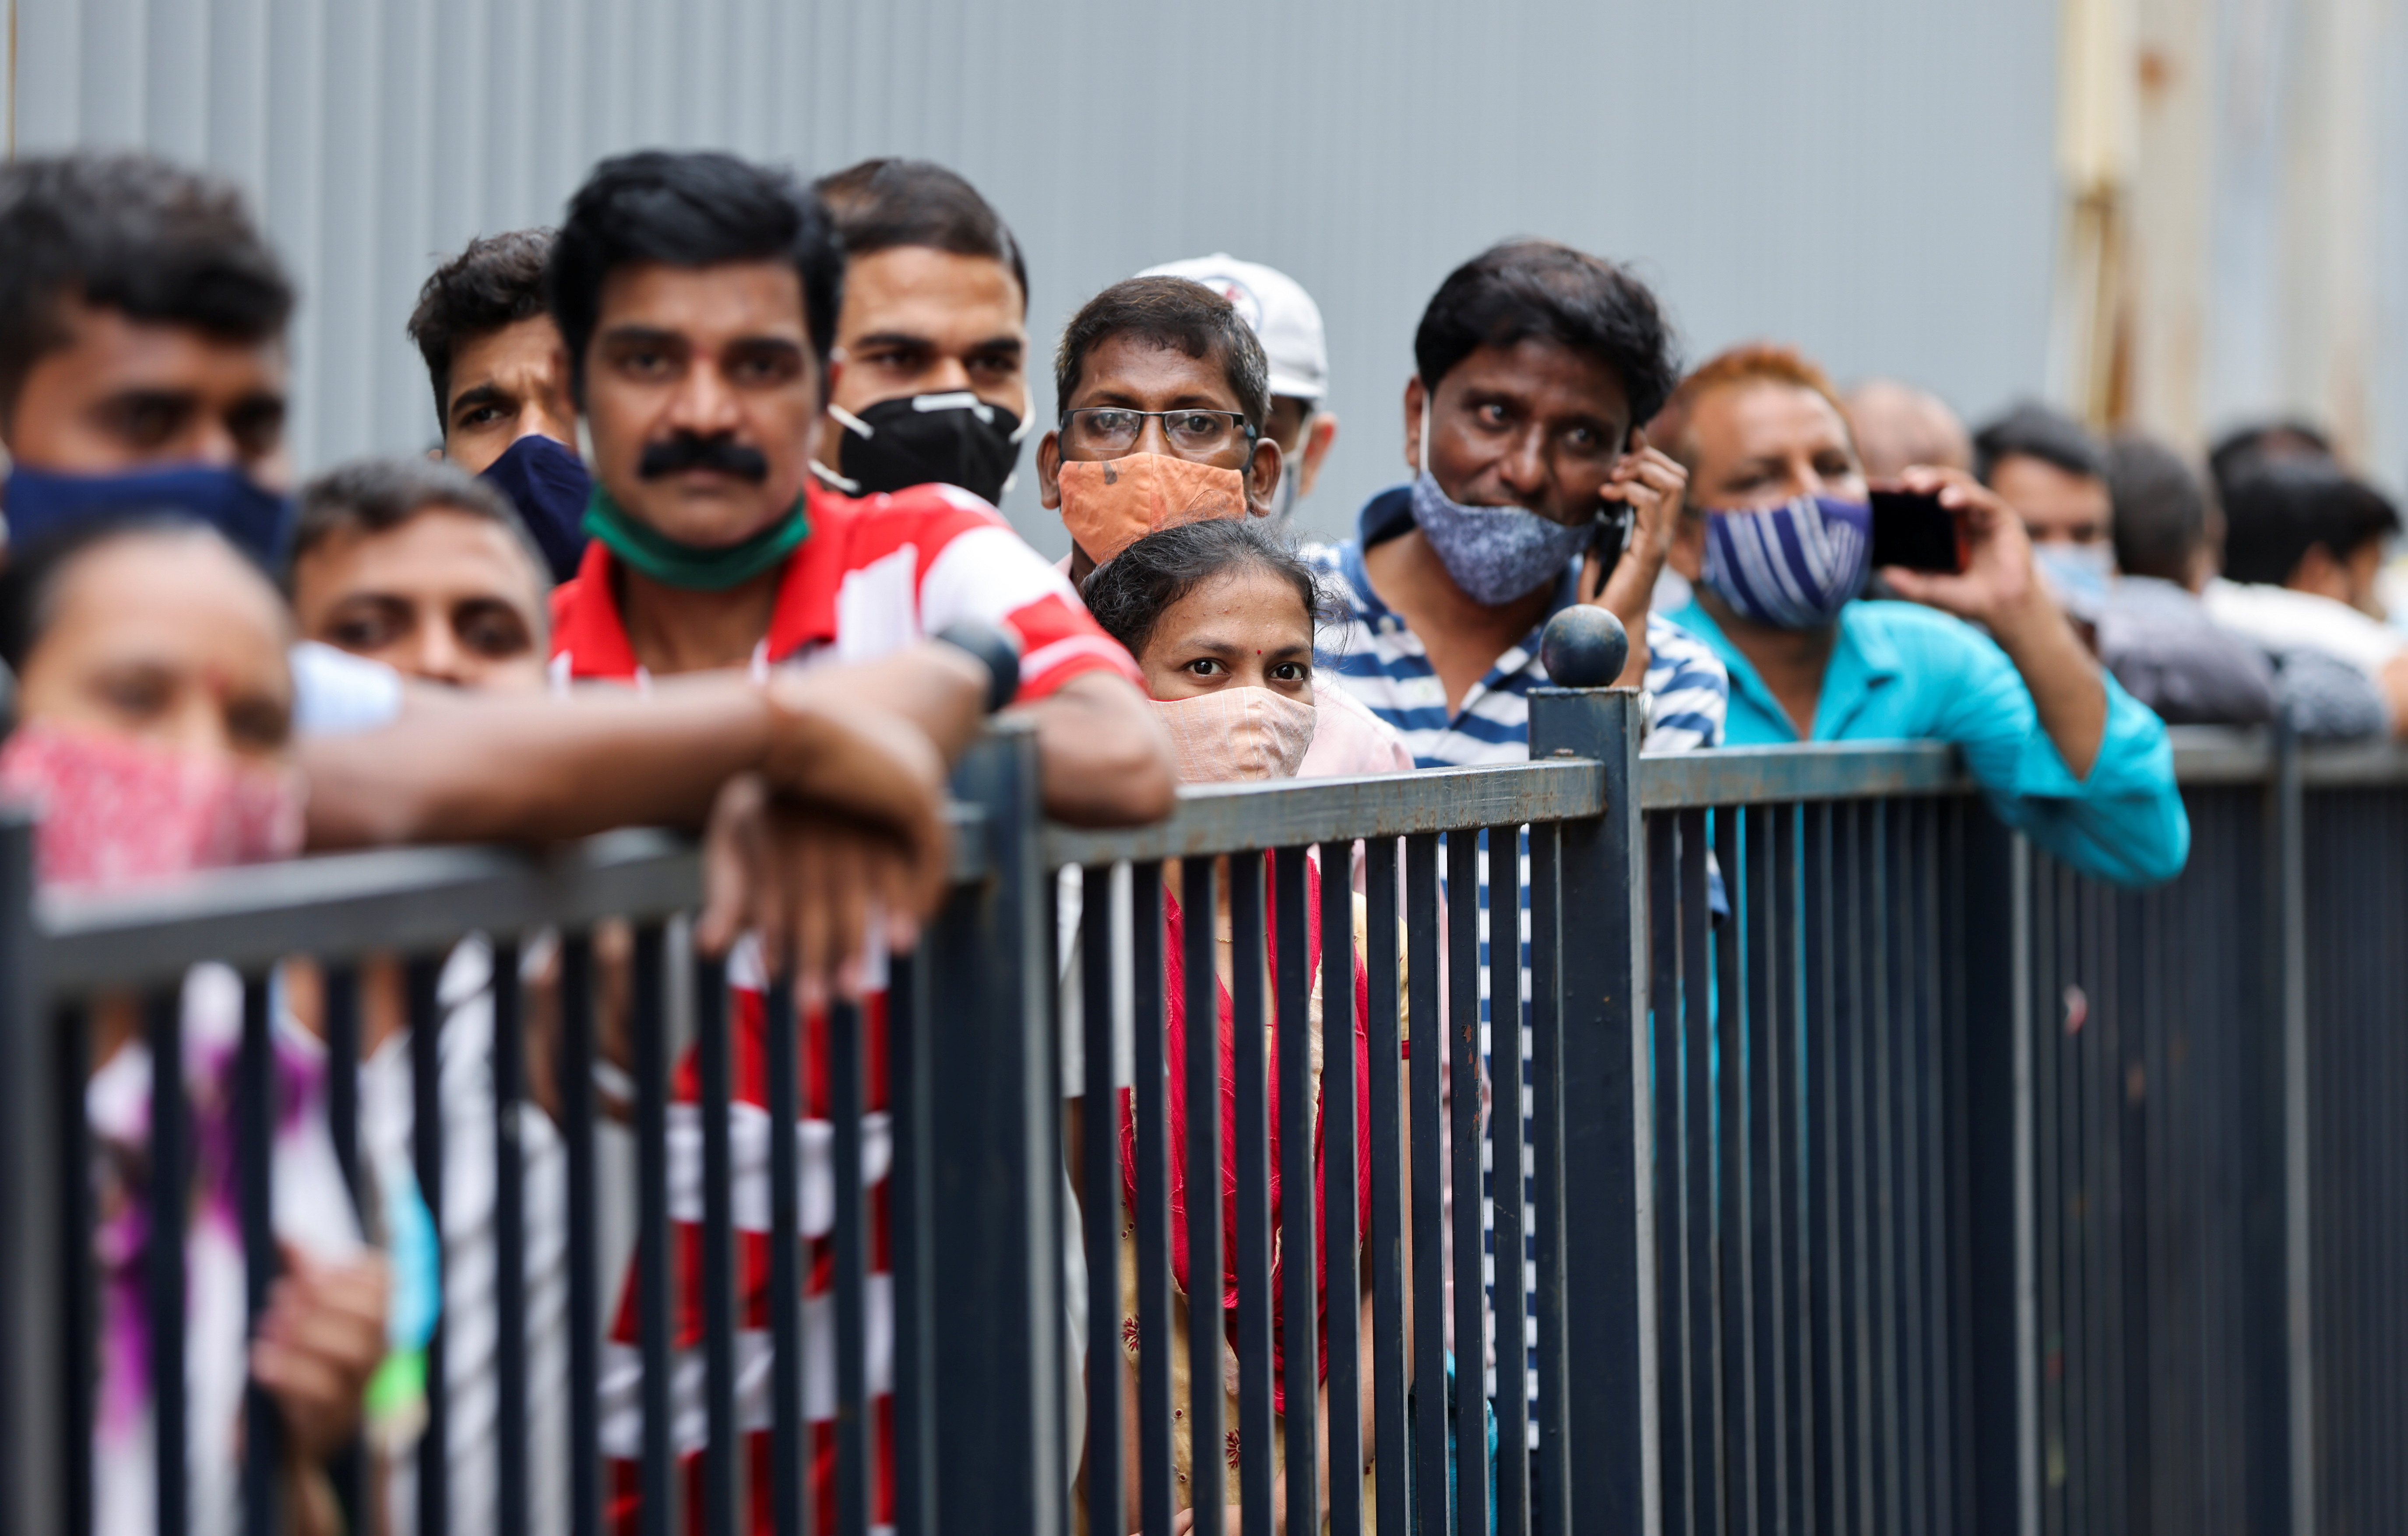 People wait in a queue to receive the vaccine against coronavirus disease (COVID-19) outside a cinema hall in Mumbai, India, August 17, 2021. REUTERS/Francis Mascarenhas